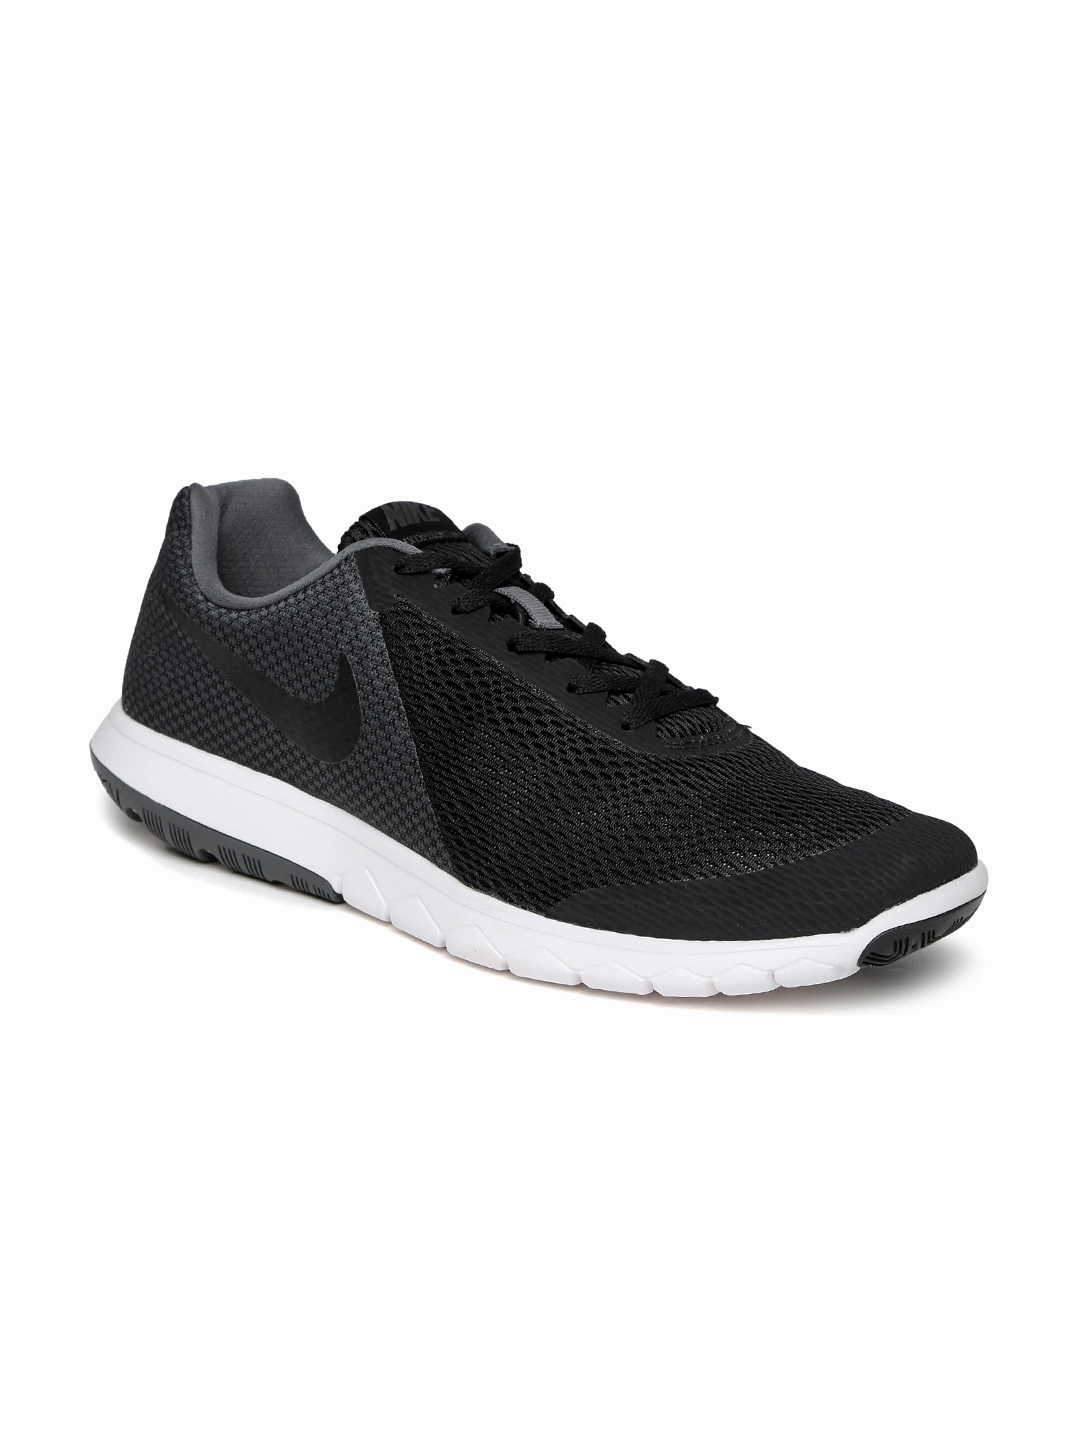 98612d711b8a3 Buy Men s Nike Flex Experience RN 6 Running Shoe - Sports Shoes for ...